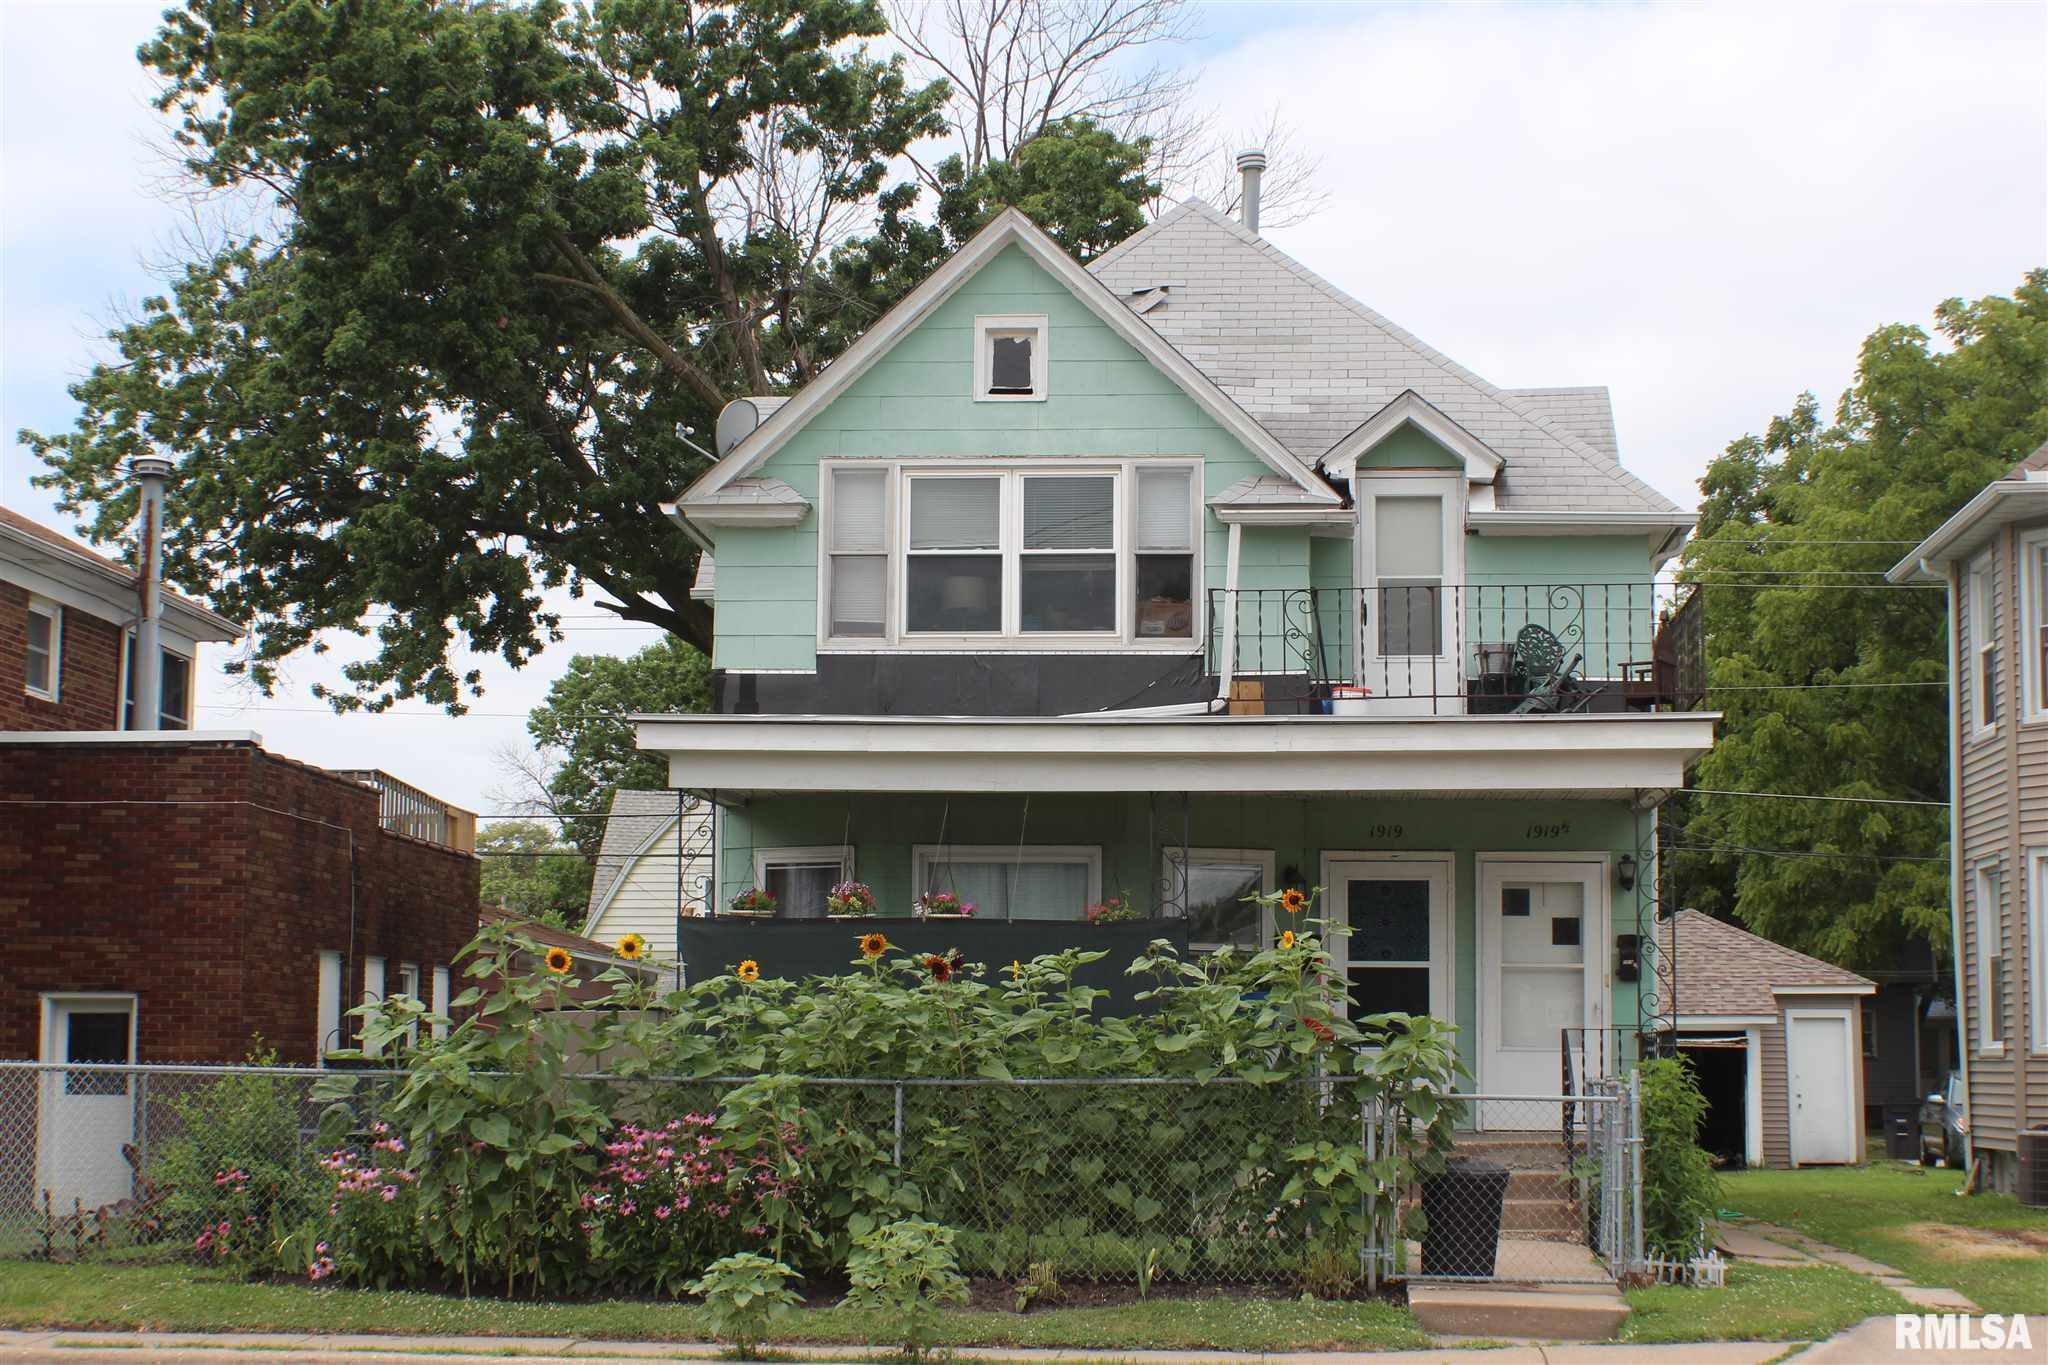 Mulit Family Home For Sale 1919 16th Moline Il Tim Odey